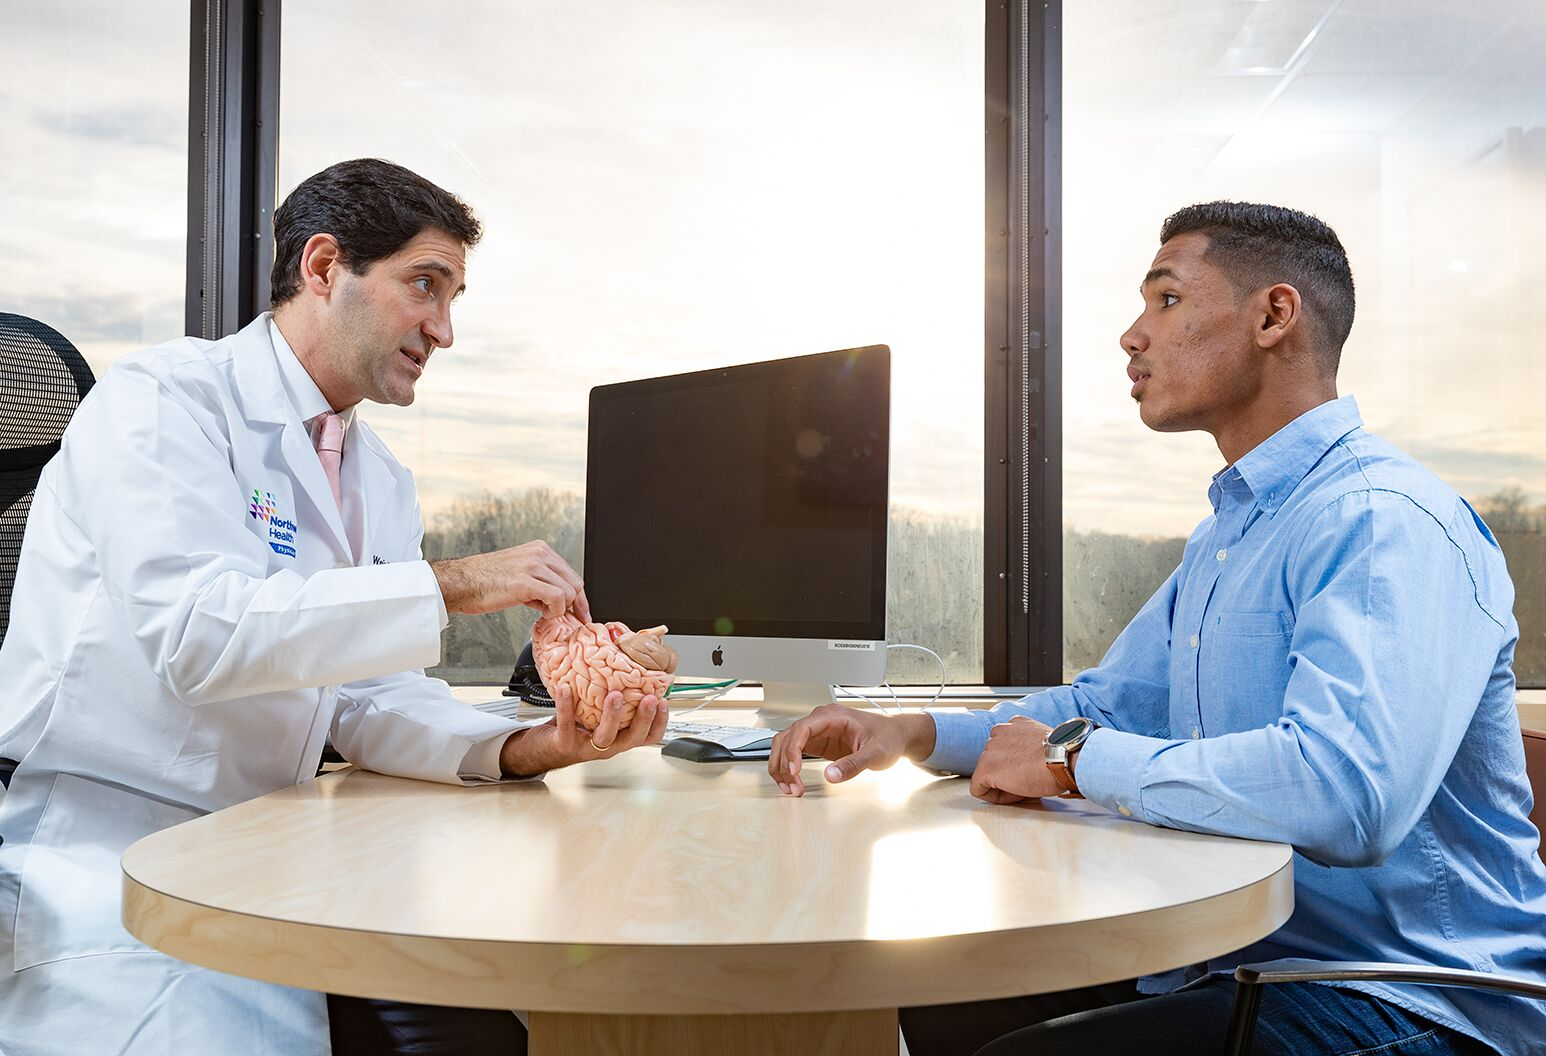 A doctor in a white lab coat holding a model brain, talking to a man in a blue shirt sitting across the desk.